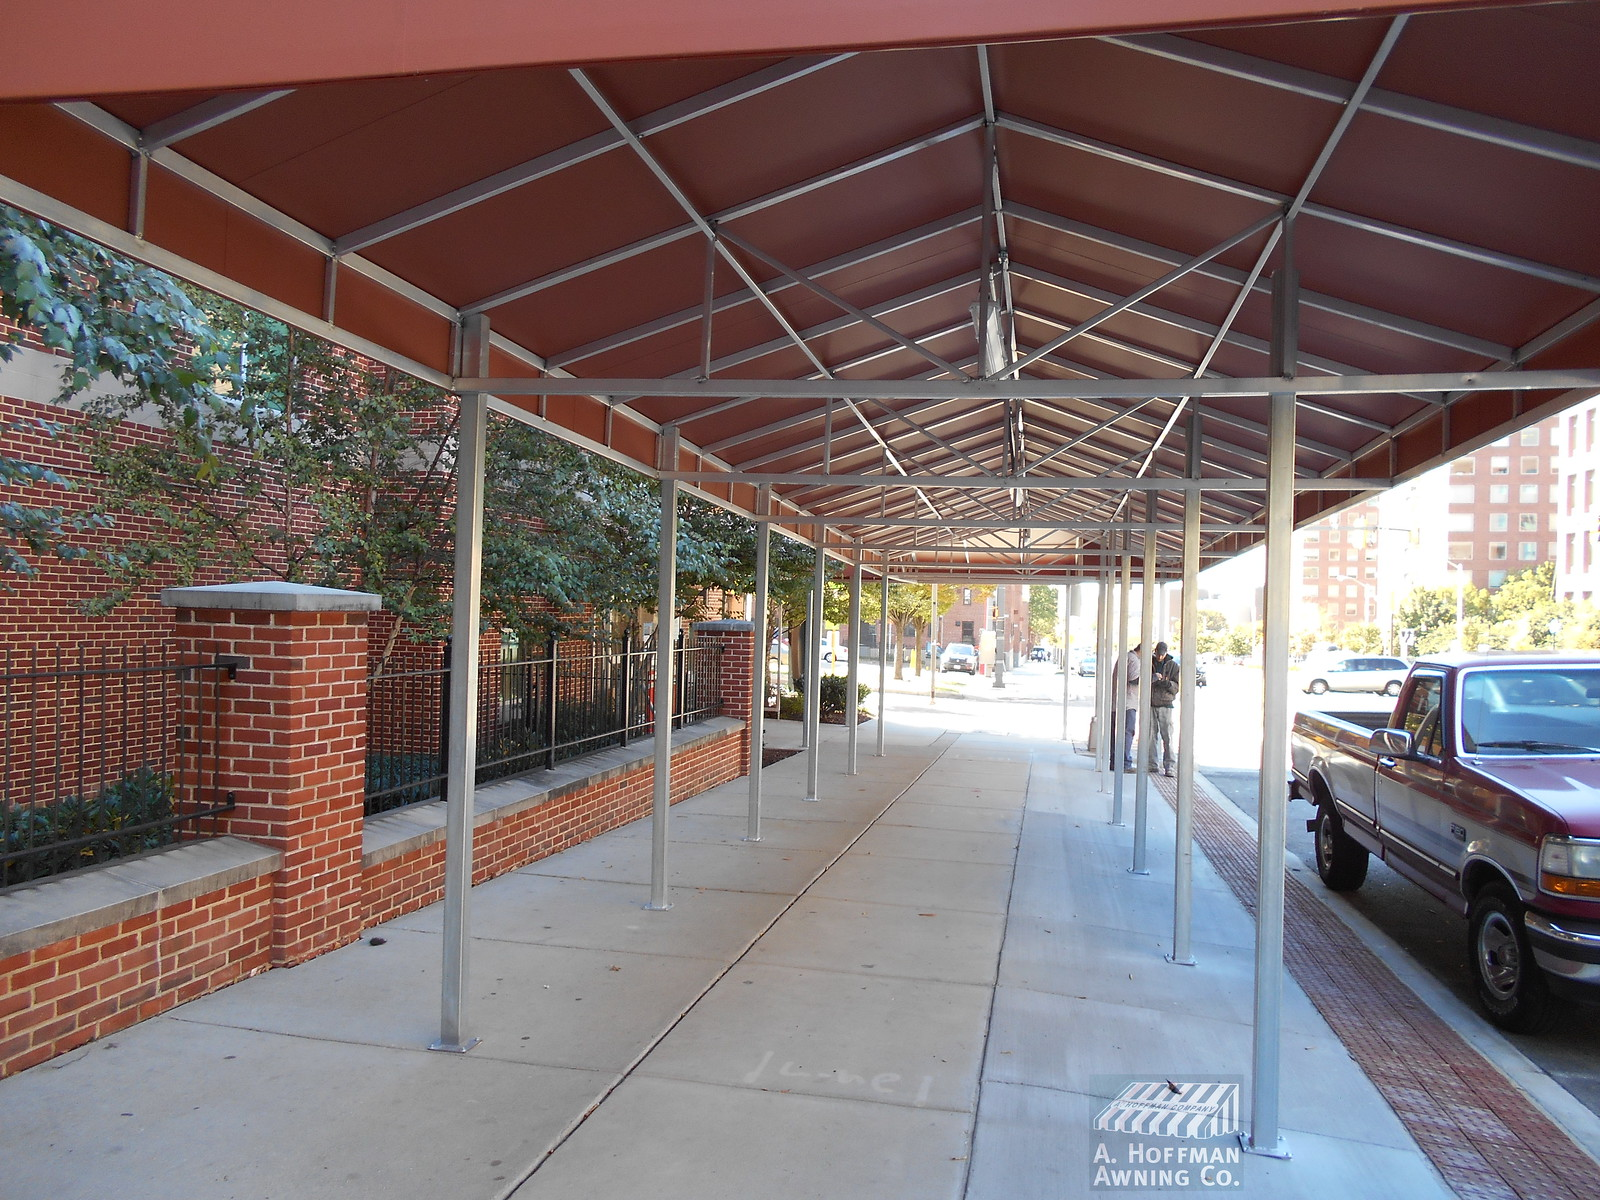 Sidewalk Awning with Welded Frame Baltimore